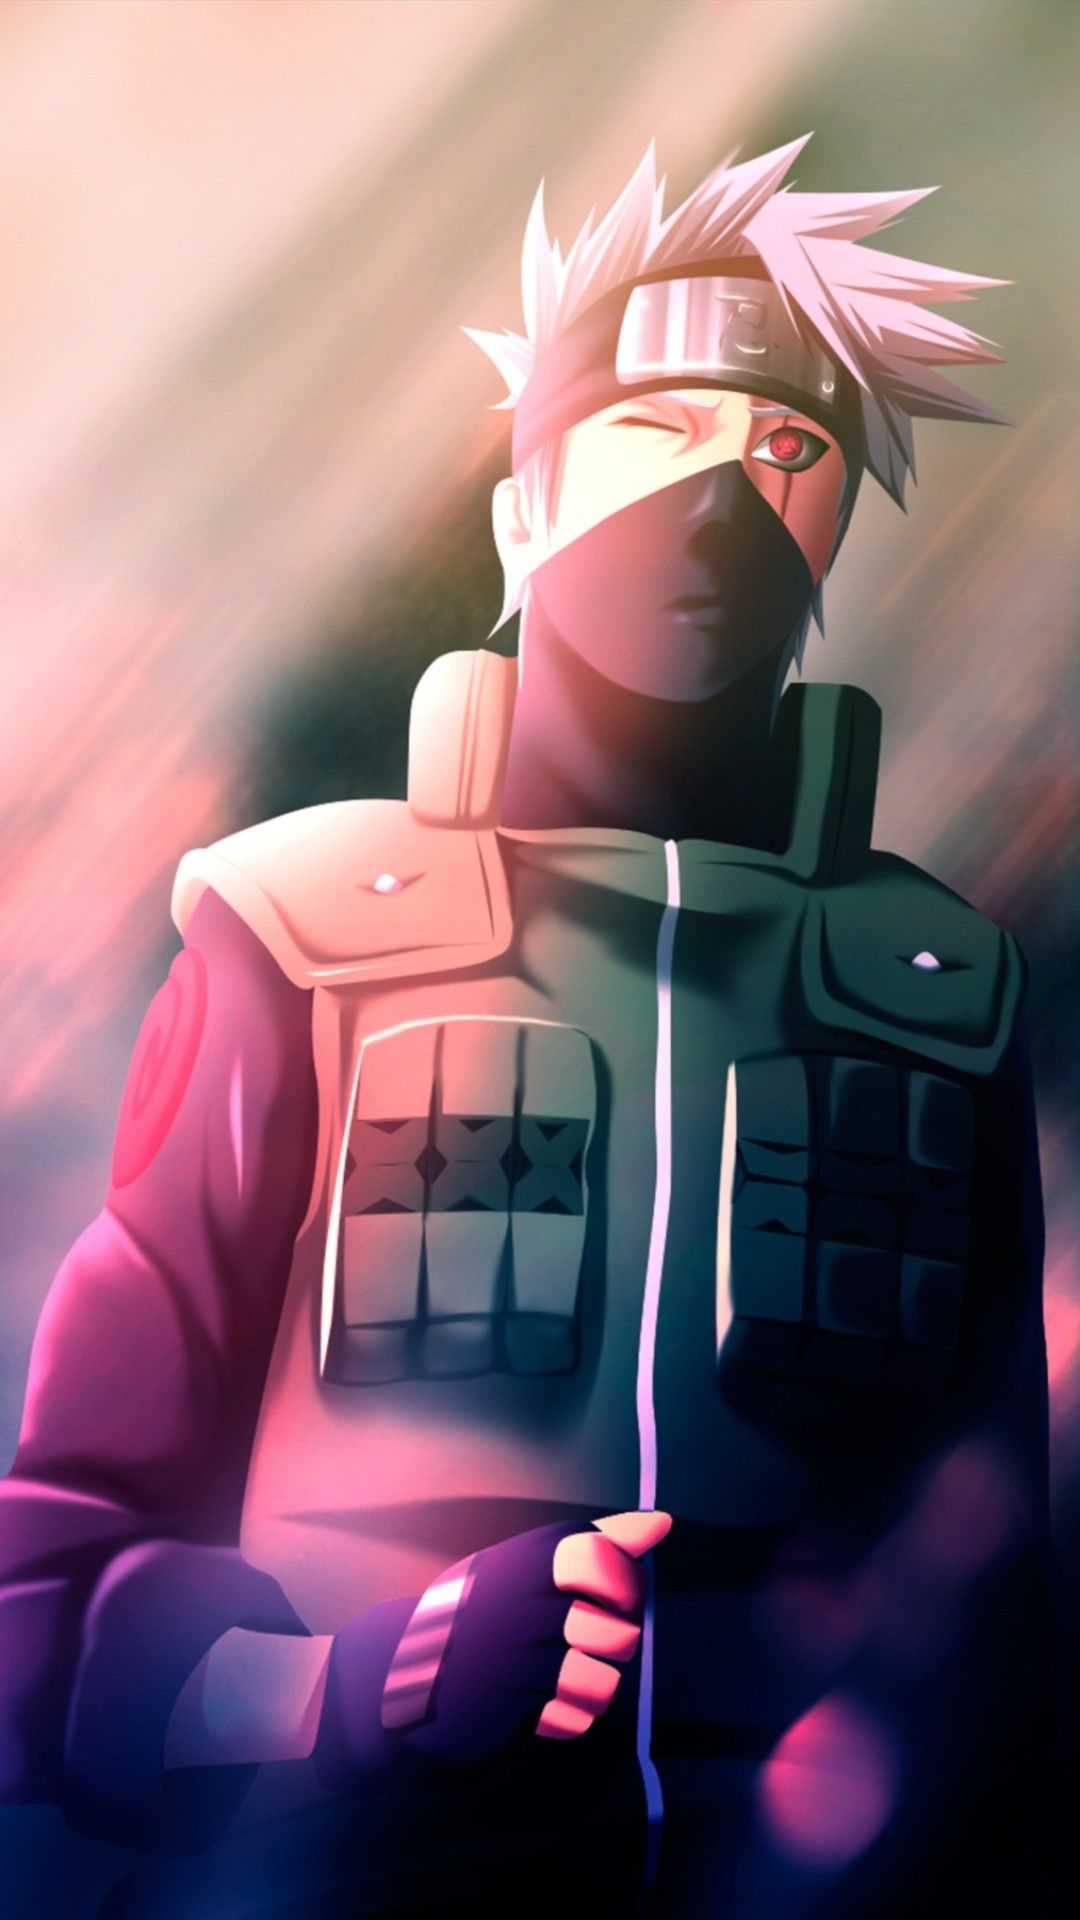 Wallpaper Phone Kakashi Full Hd Naruto Naruto Pictures Naruto Supreme